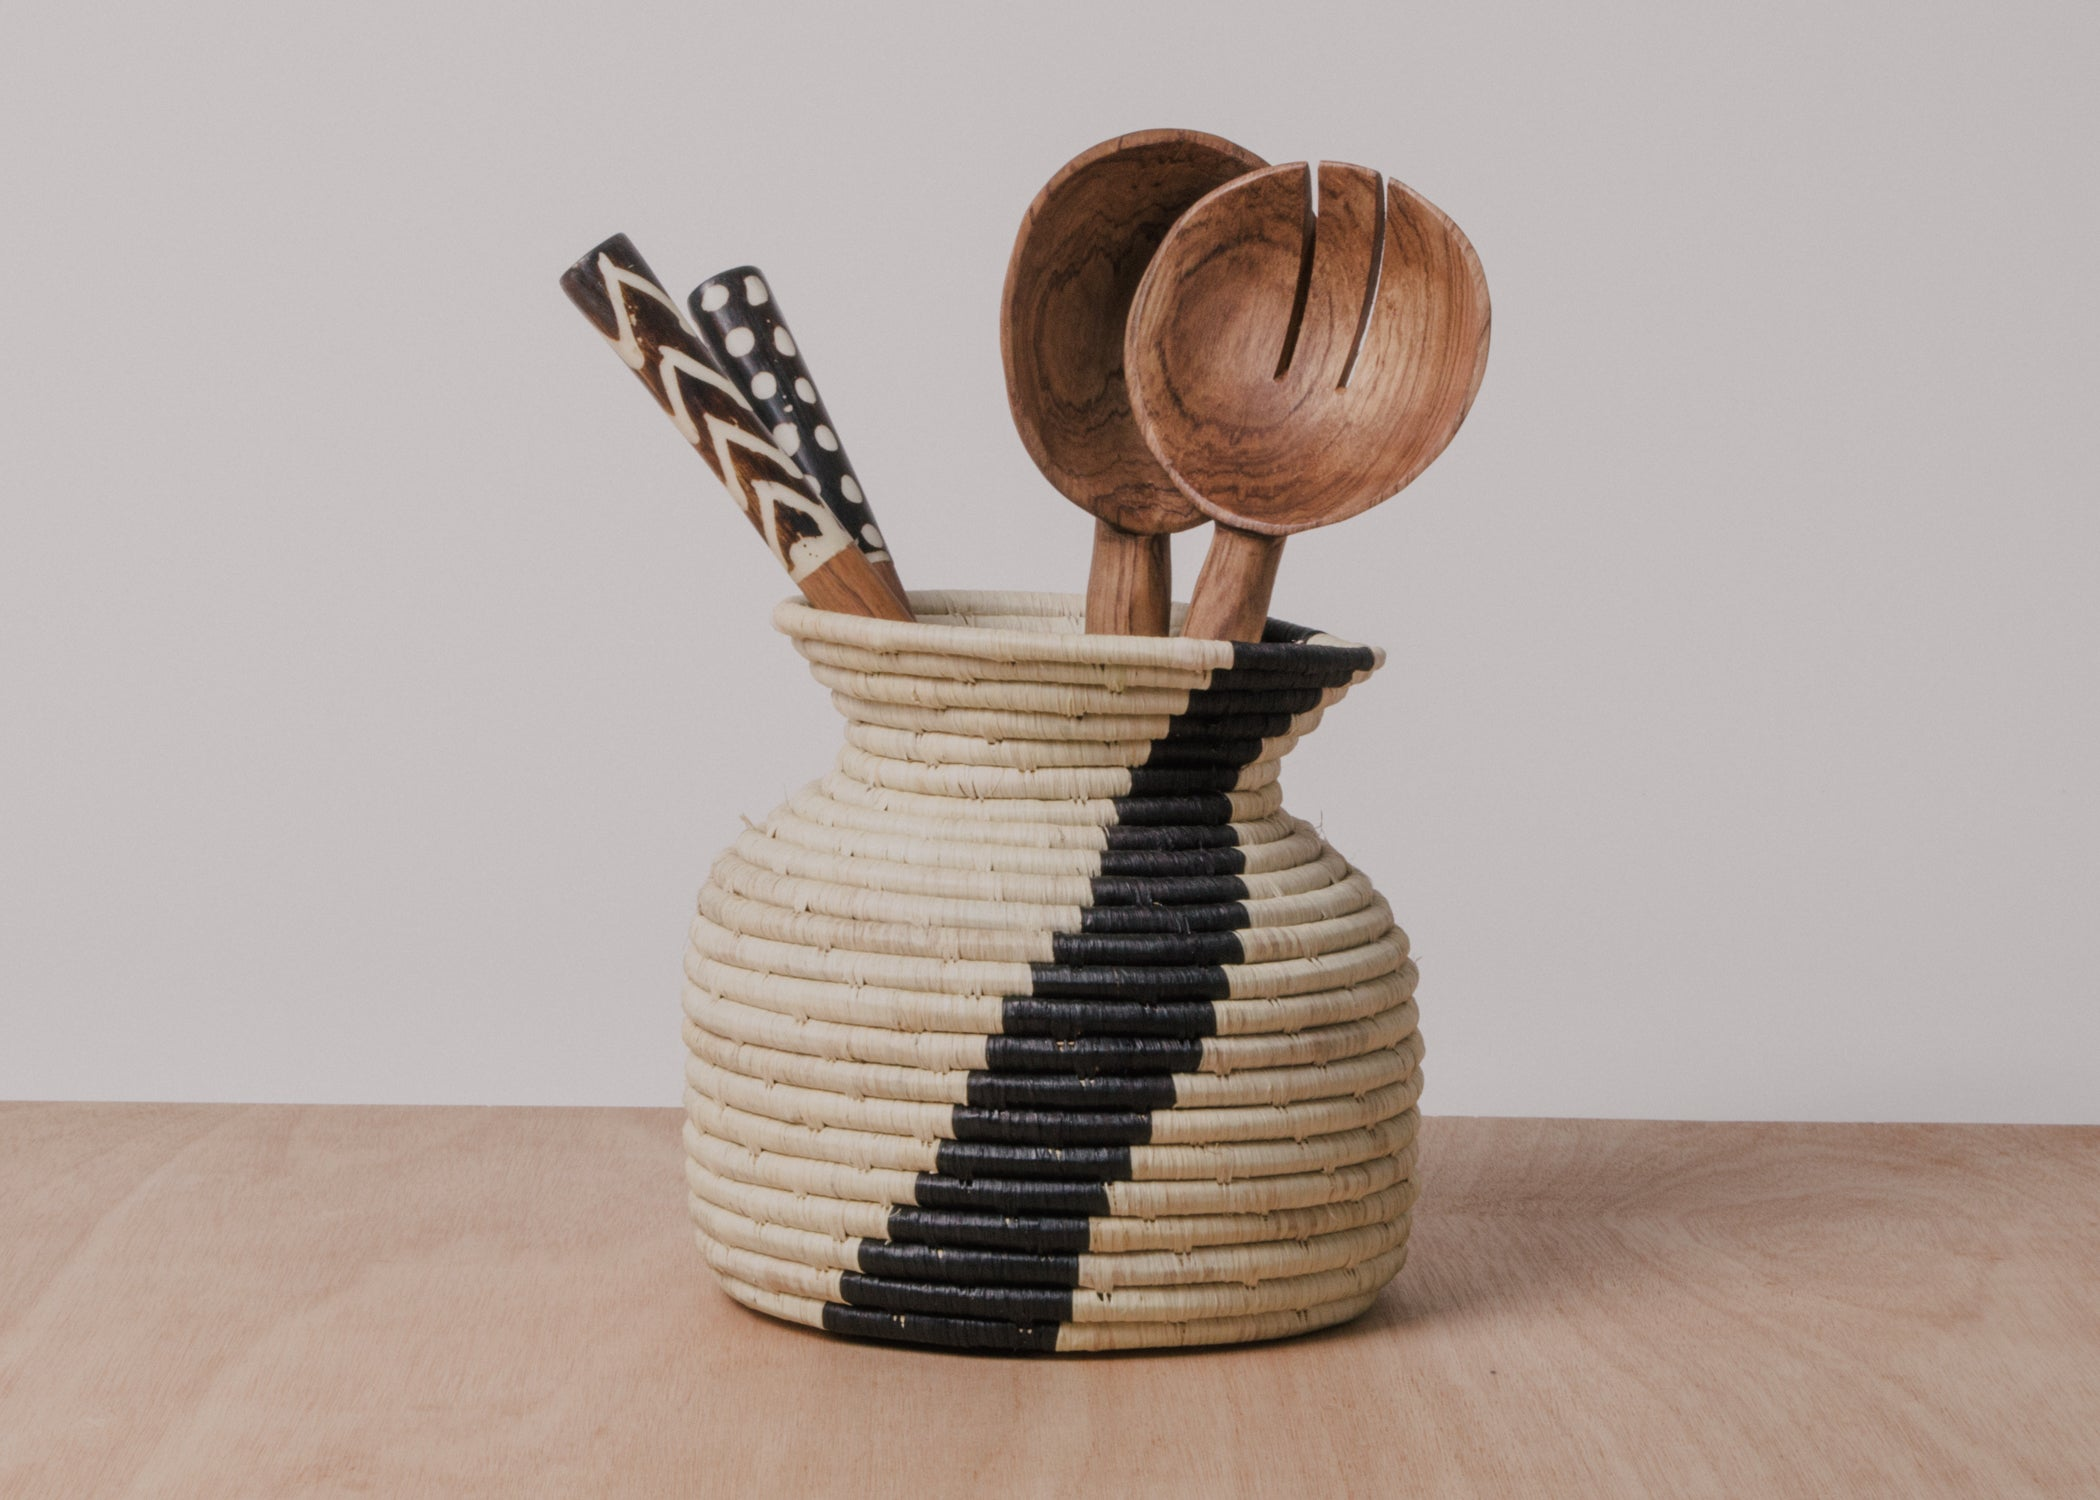 Striped Kitchen Utensil Holder - KAZI - Artisan made high quality home decor and wall art